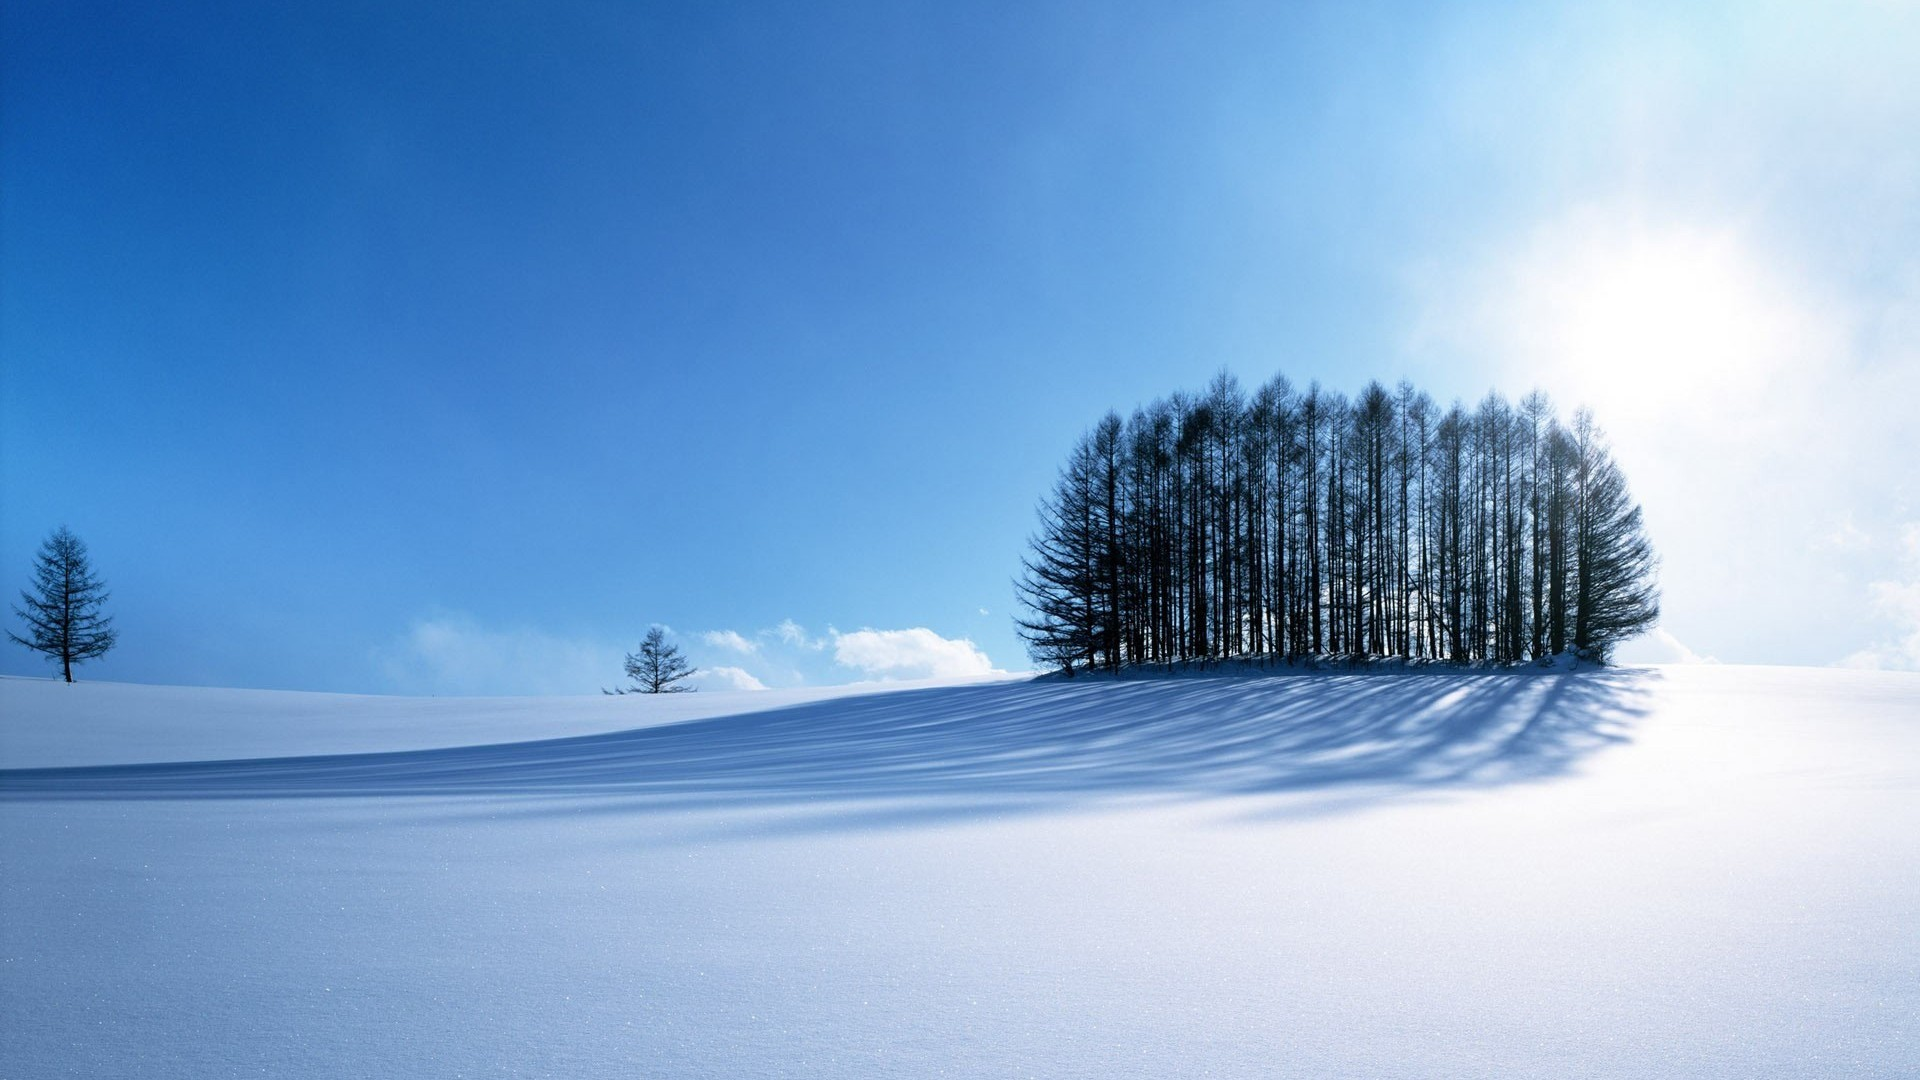 Winter Wallpapers High Quality